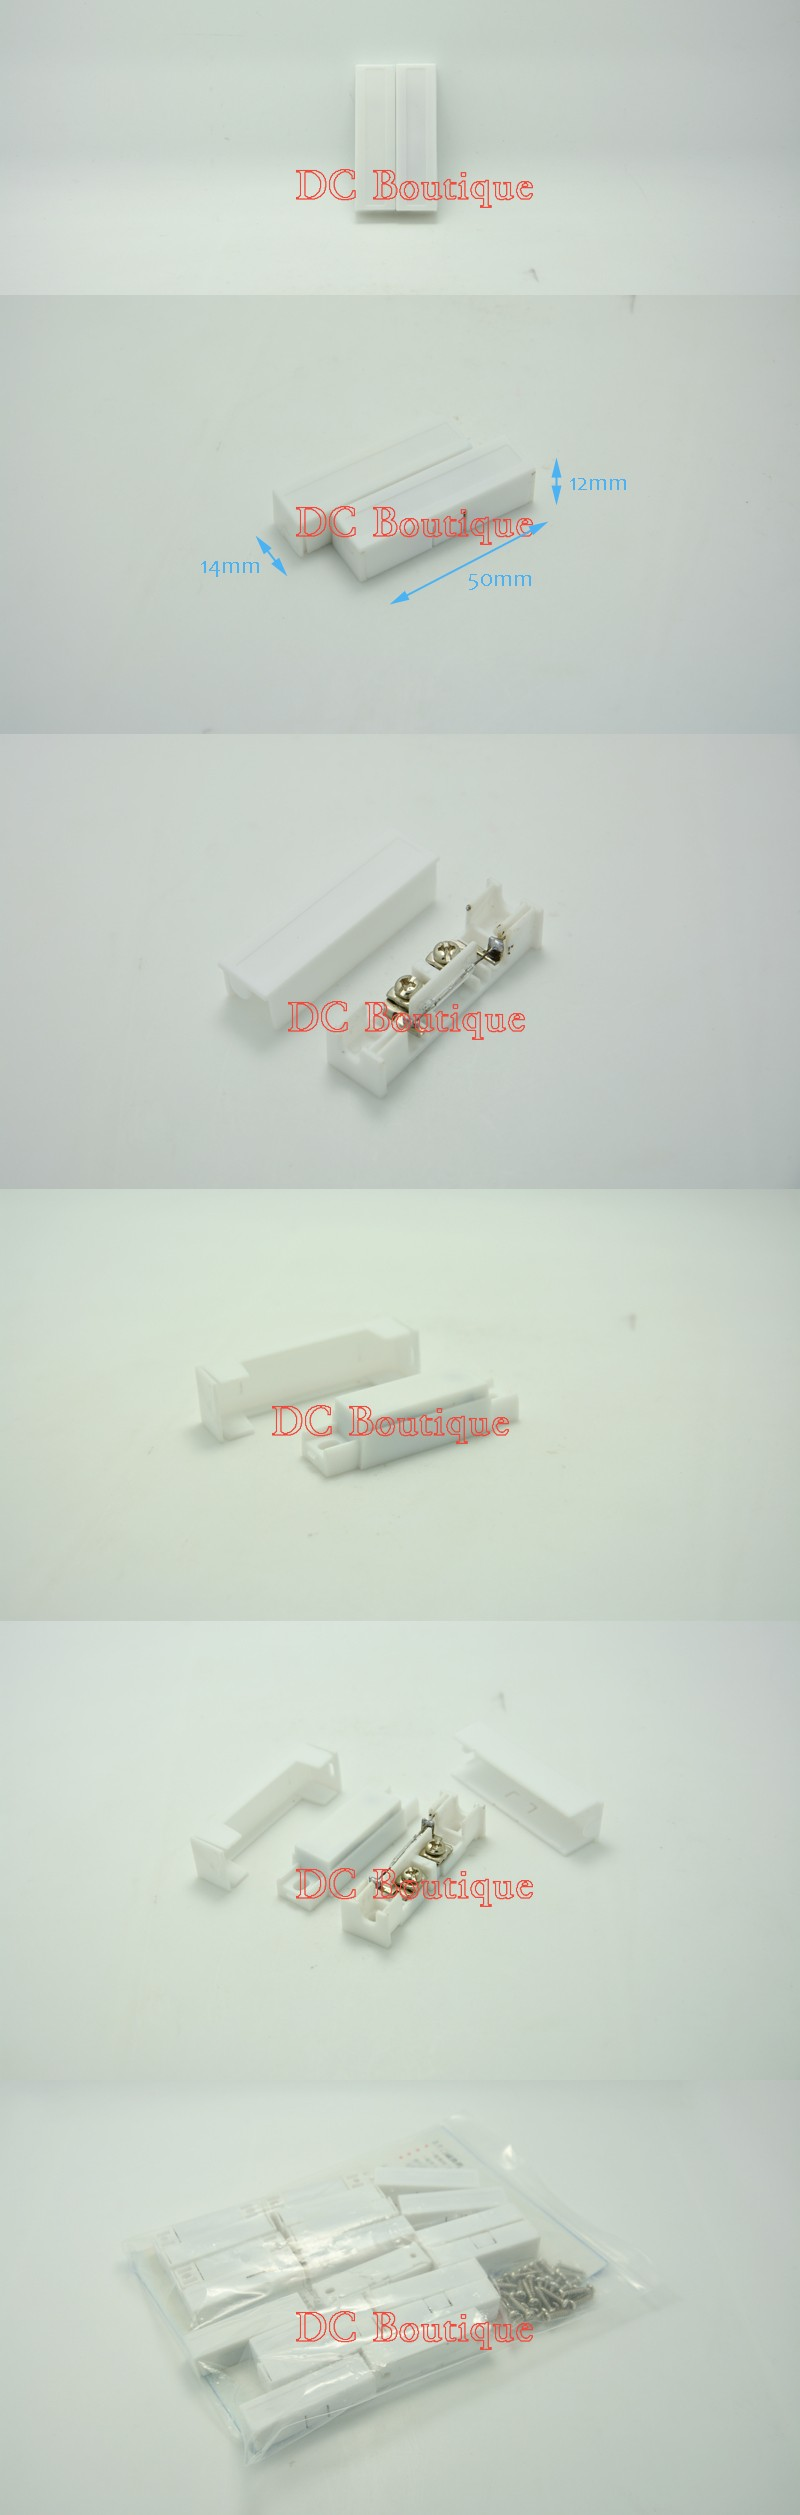 Brown Recessed Type Security Alarm Contacts Door Window Reed Switch Contact Wiring Series 5 Image